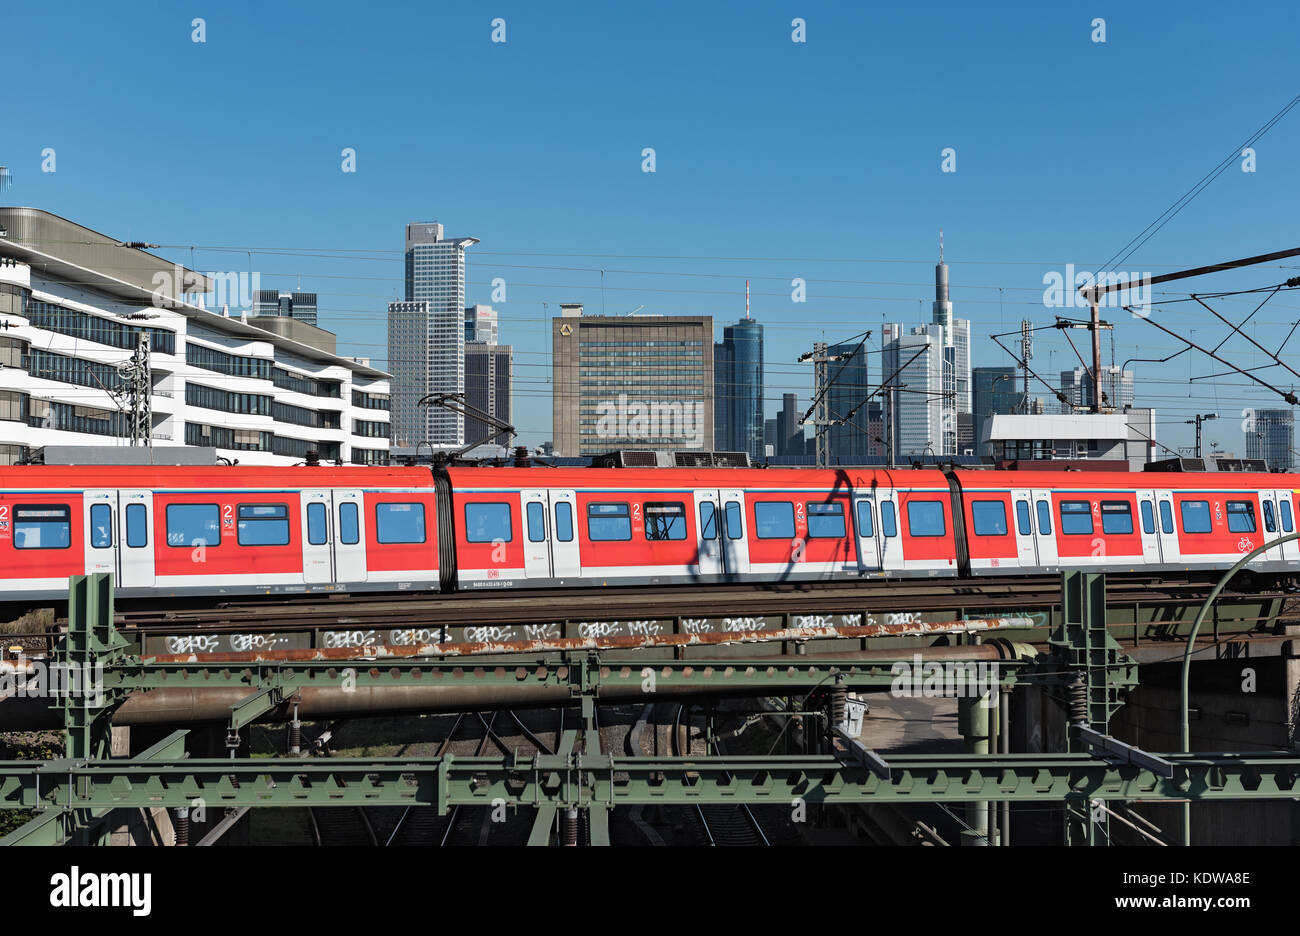 Skyscrapers and the railway aerial of Frankfurt main station - Stock Image